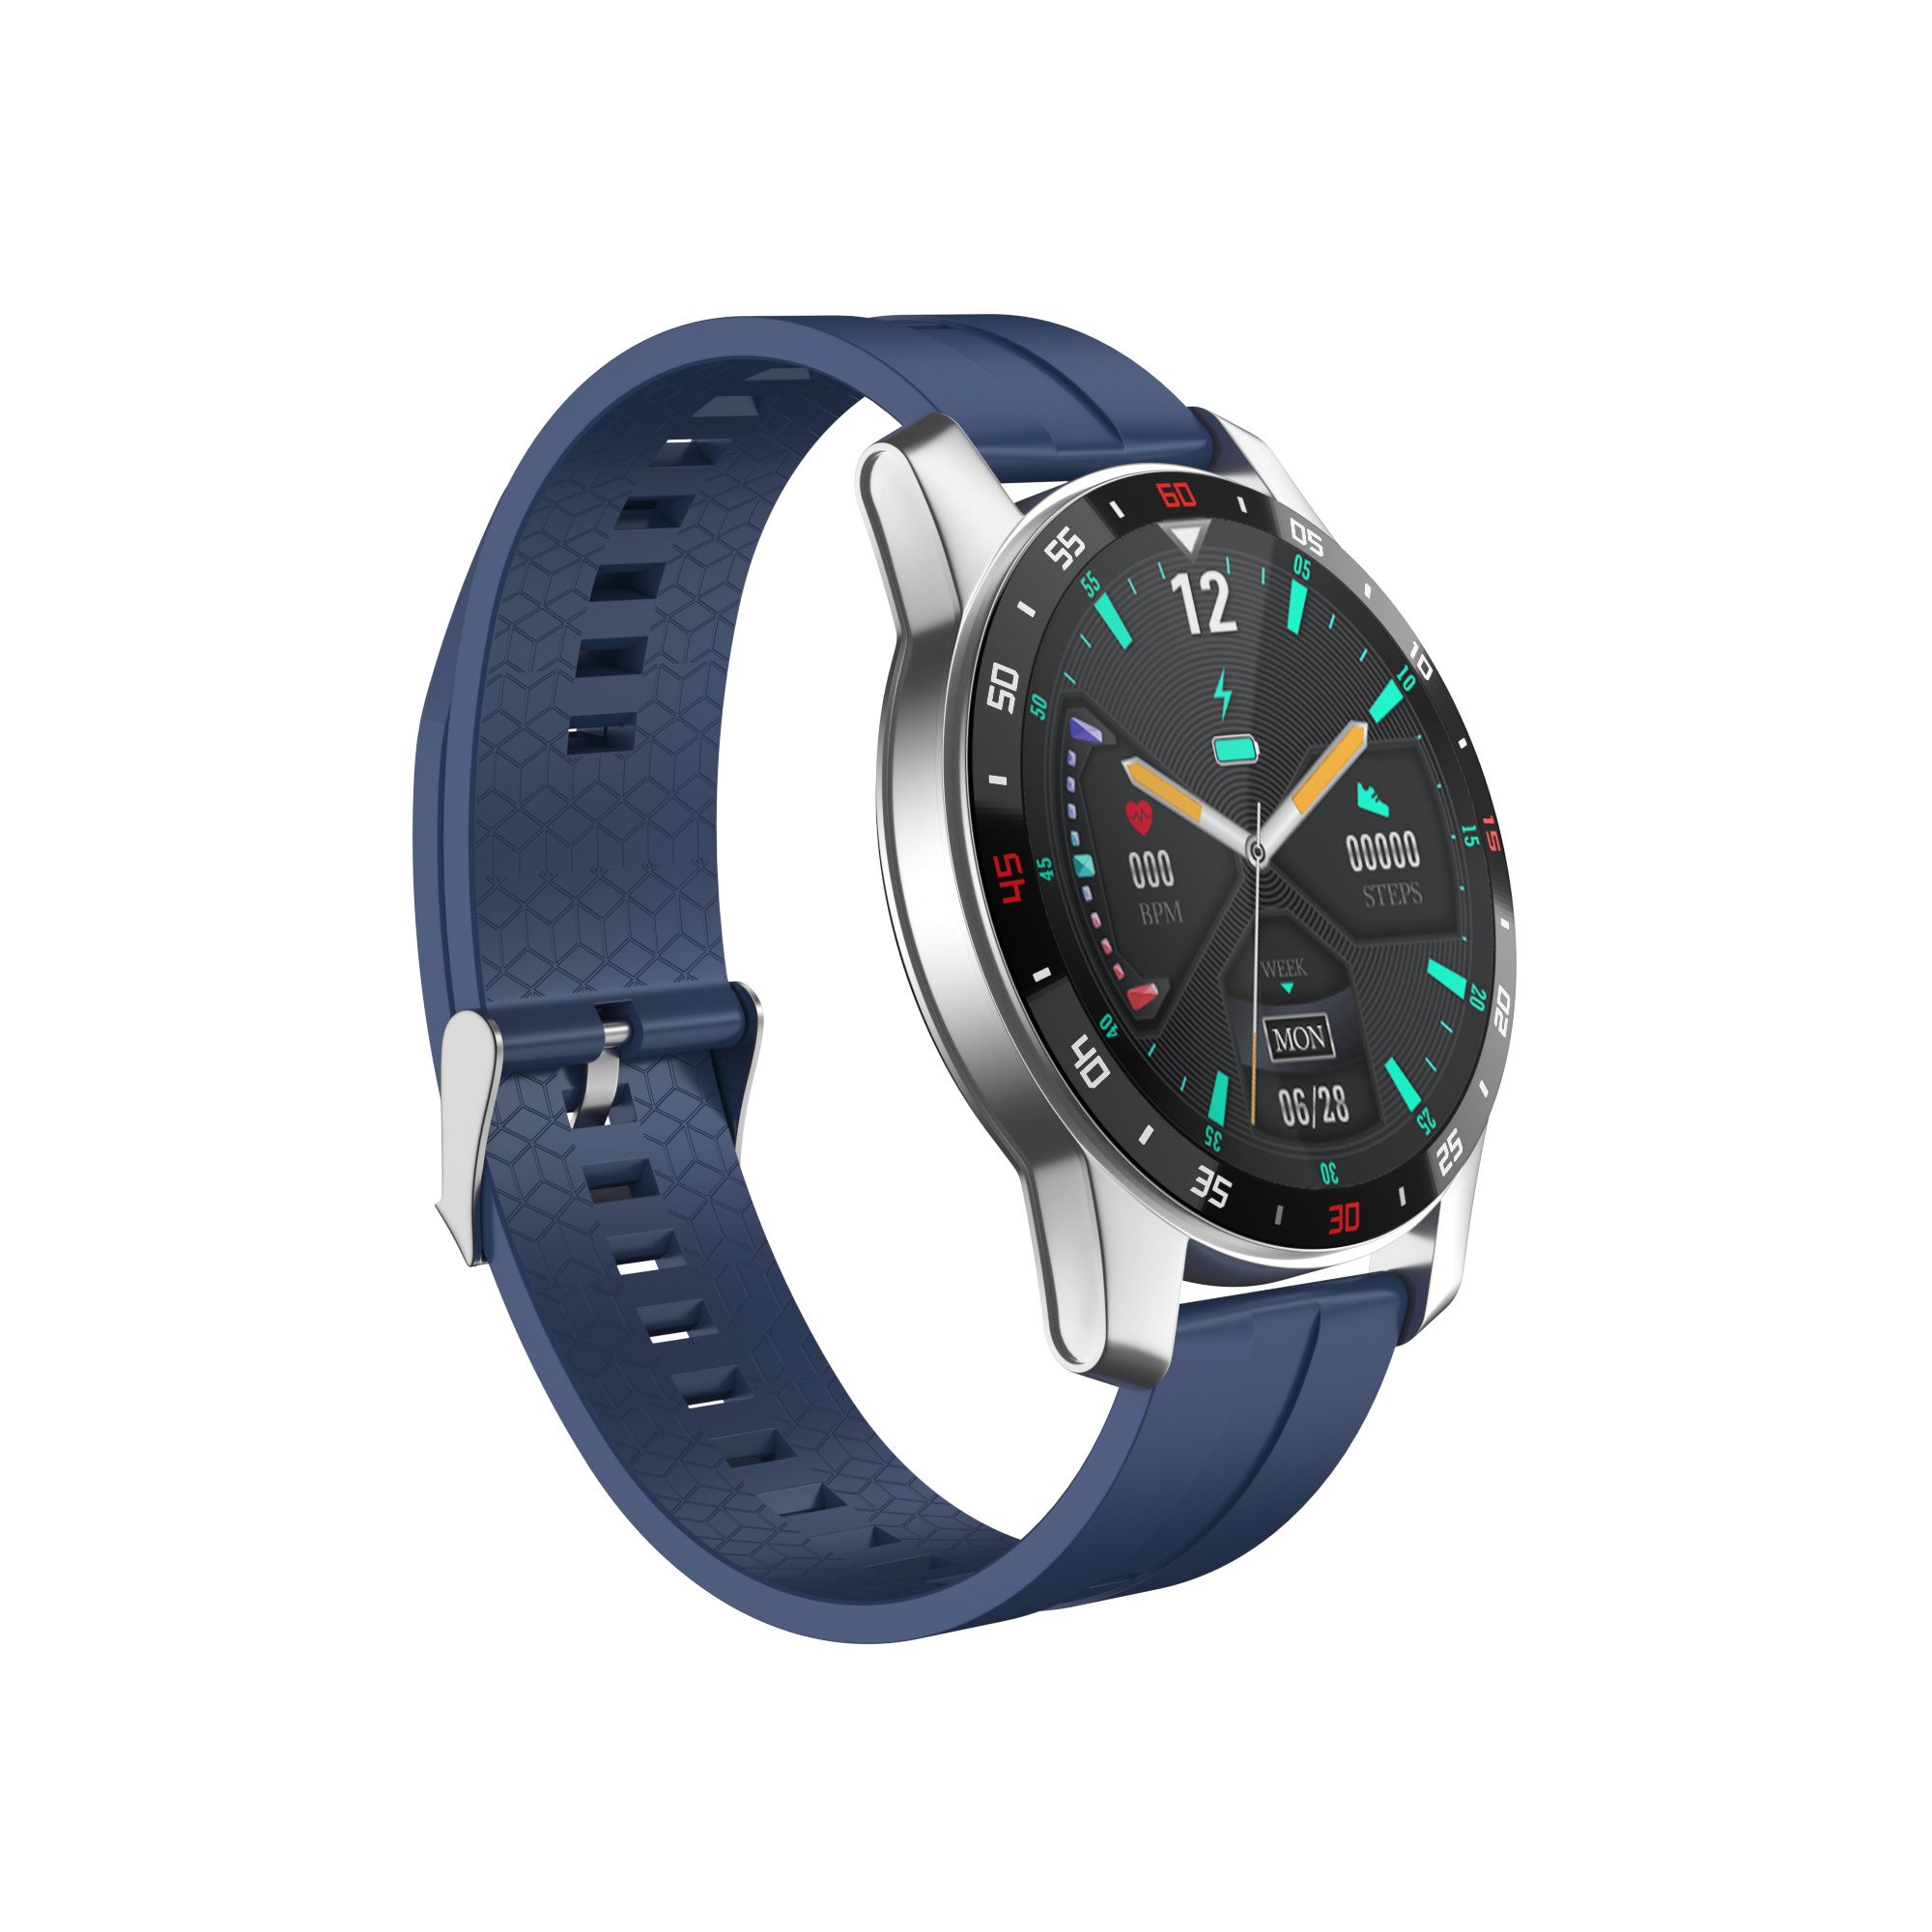 F12 Pro Bluetooth 5.0 Sports Smartwatches Color Display 280mah 24h Real Time Heart Tate Monitoring Smartwatch blue